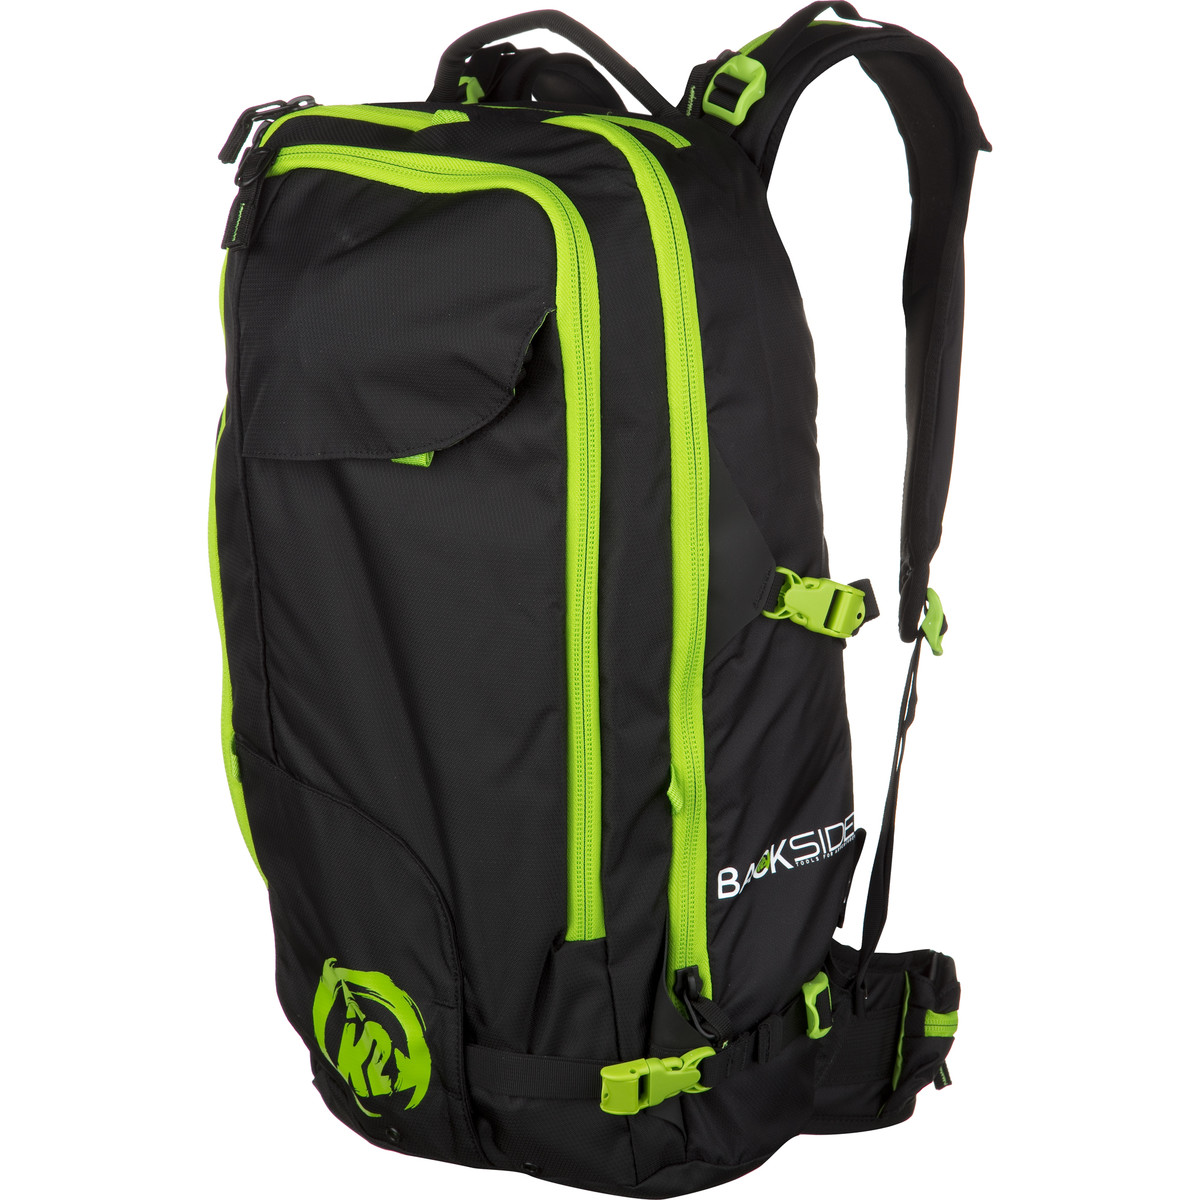 K2 Backside 24 Kitted Pack